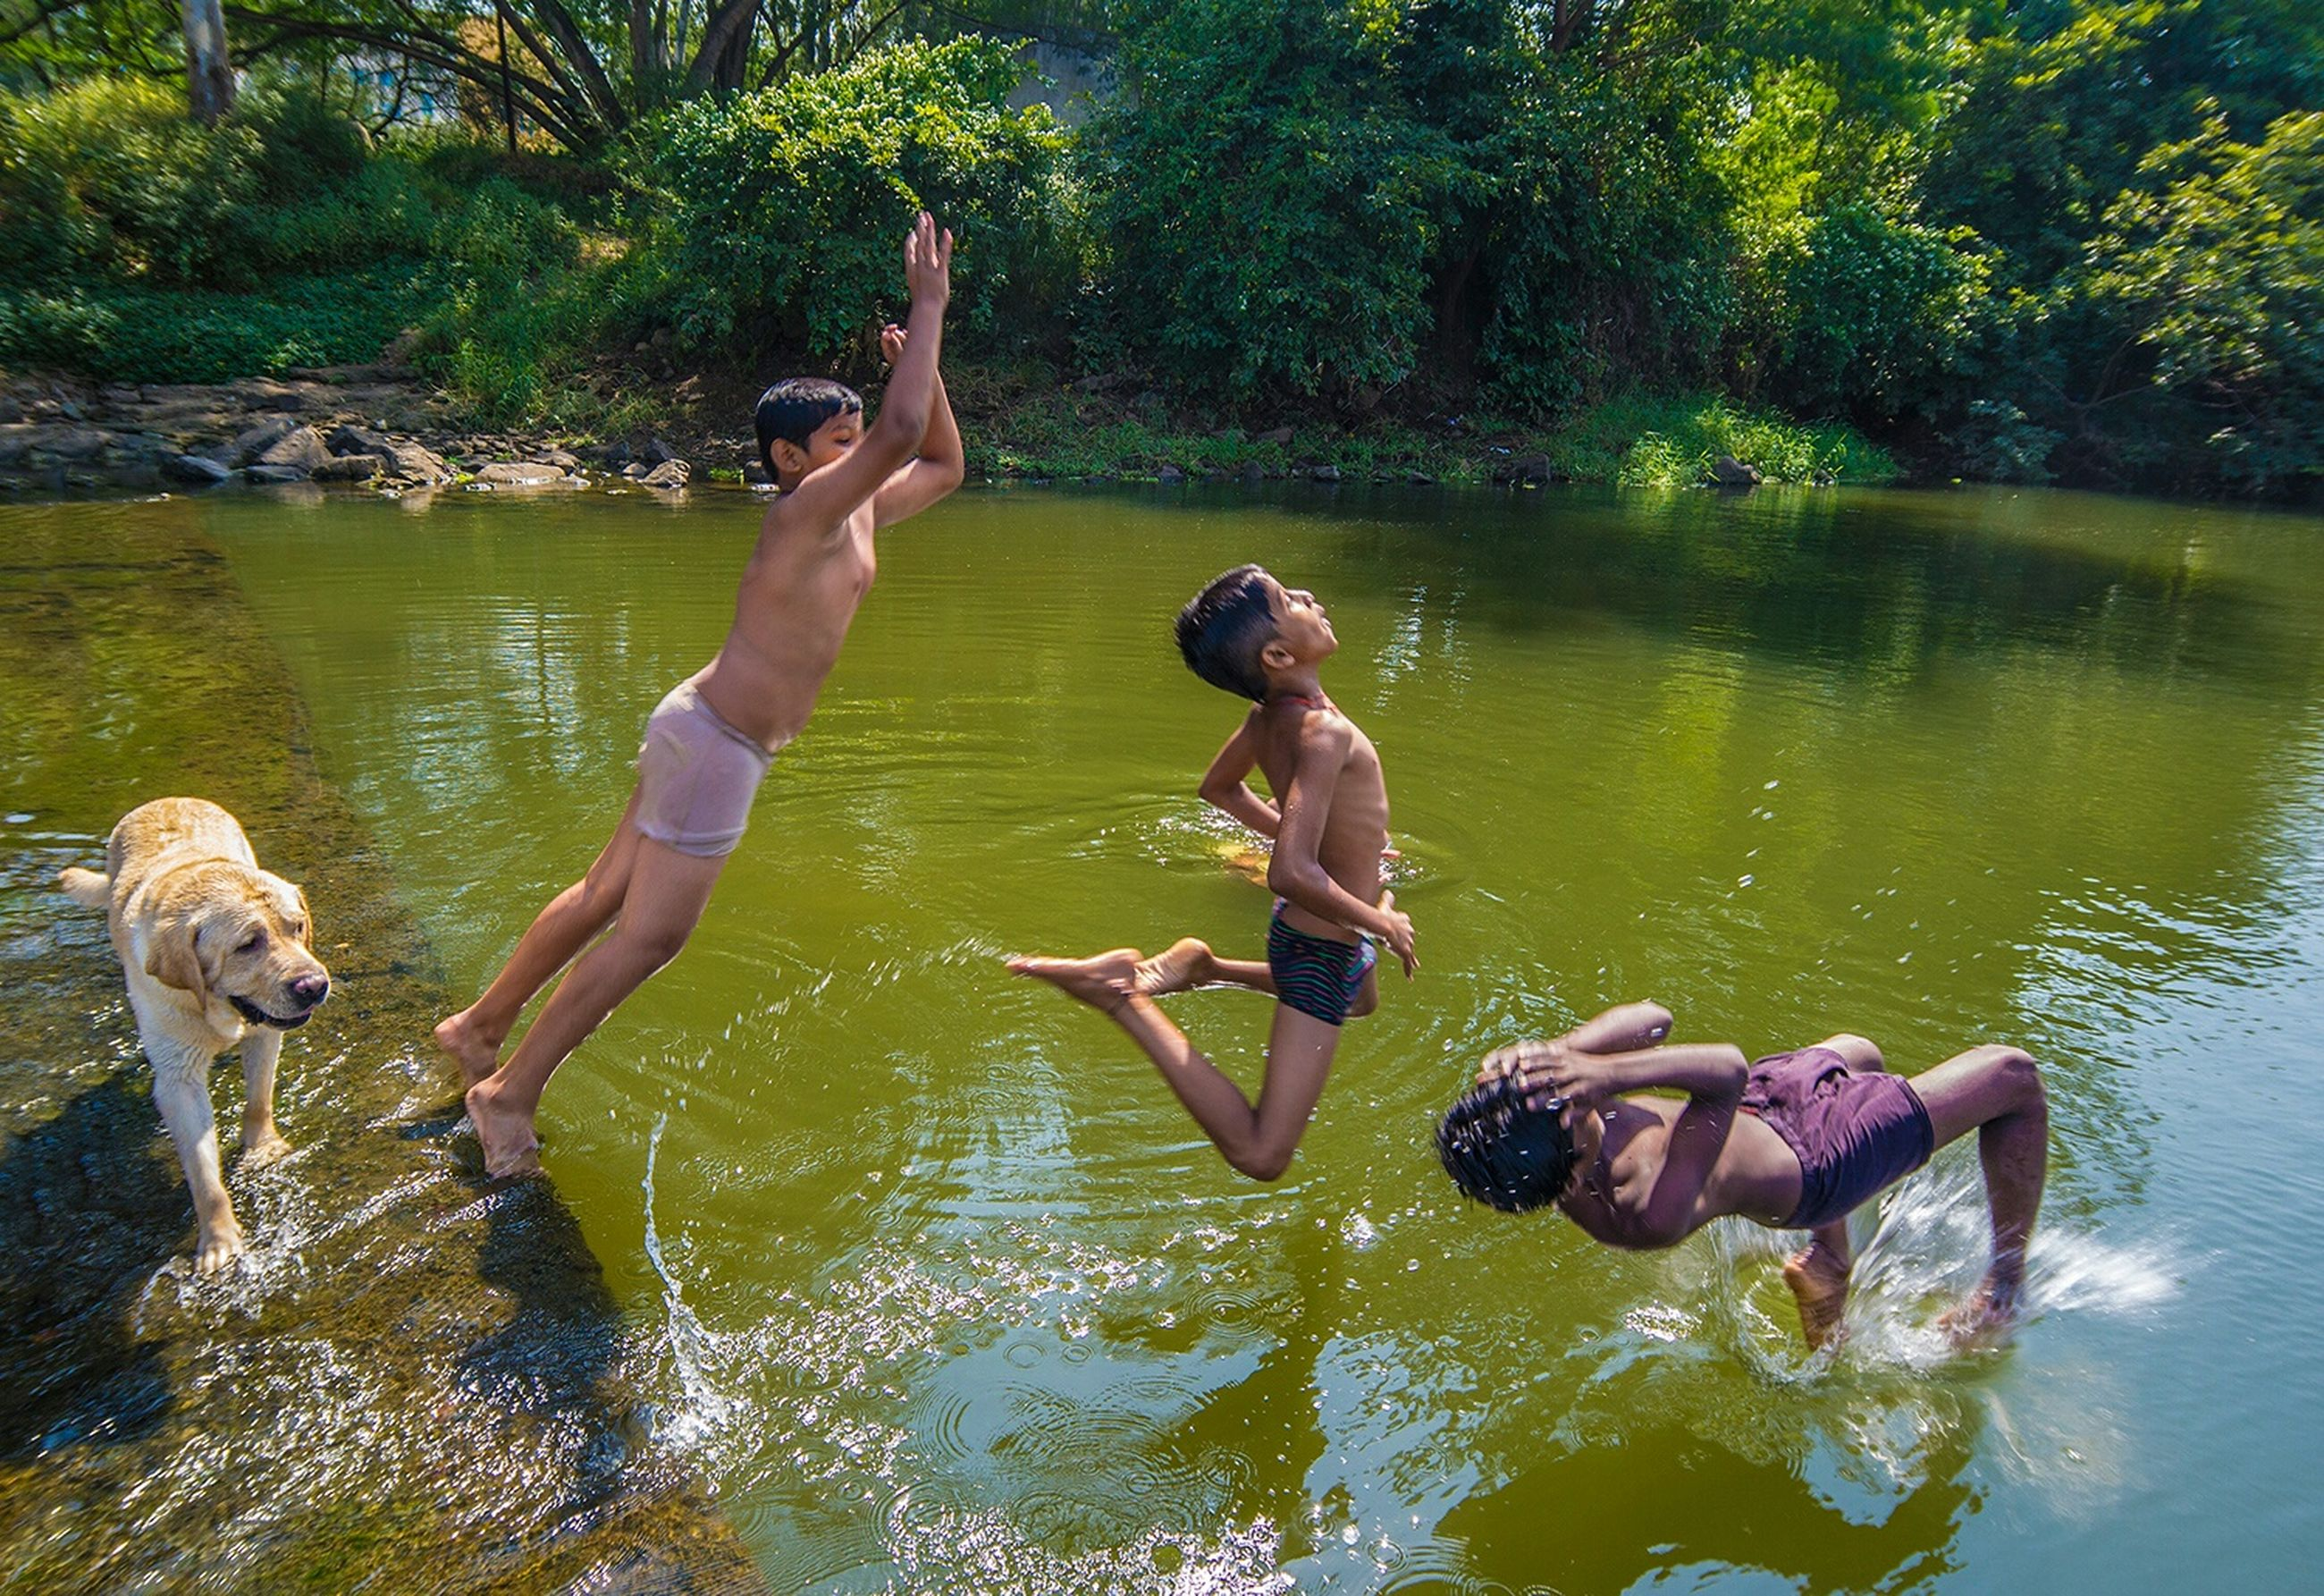 water, waterfront, togetherness, leisure activity, lifestyles, swimming, lake, animal themes, tree, full length, bonding, river, men, childhood, nature, boys, reflection